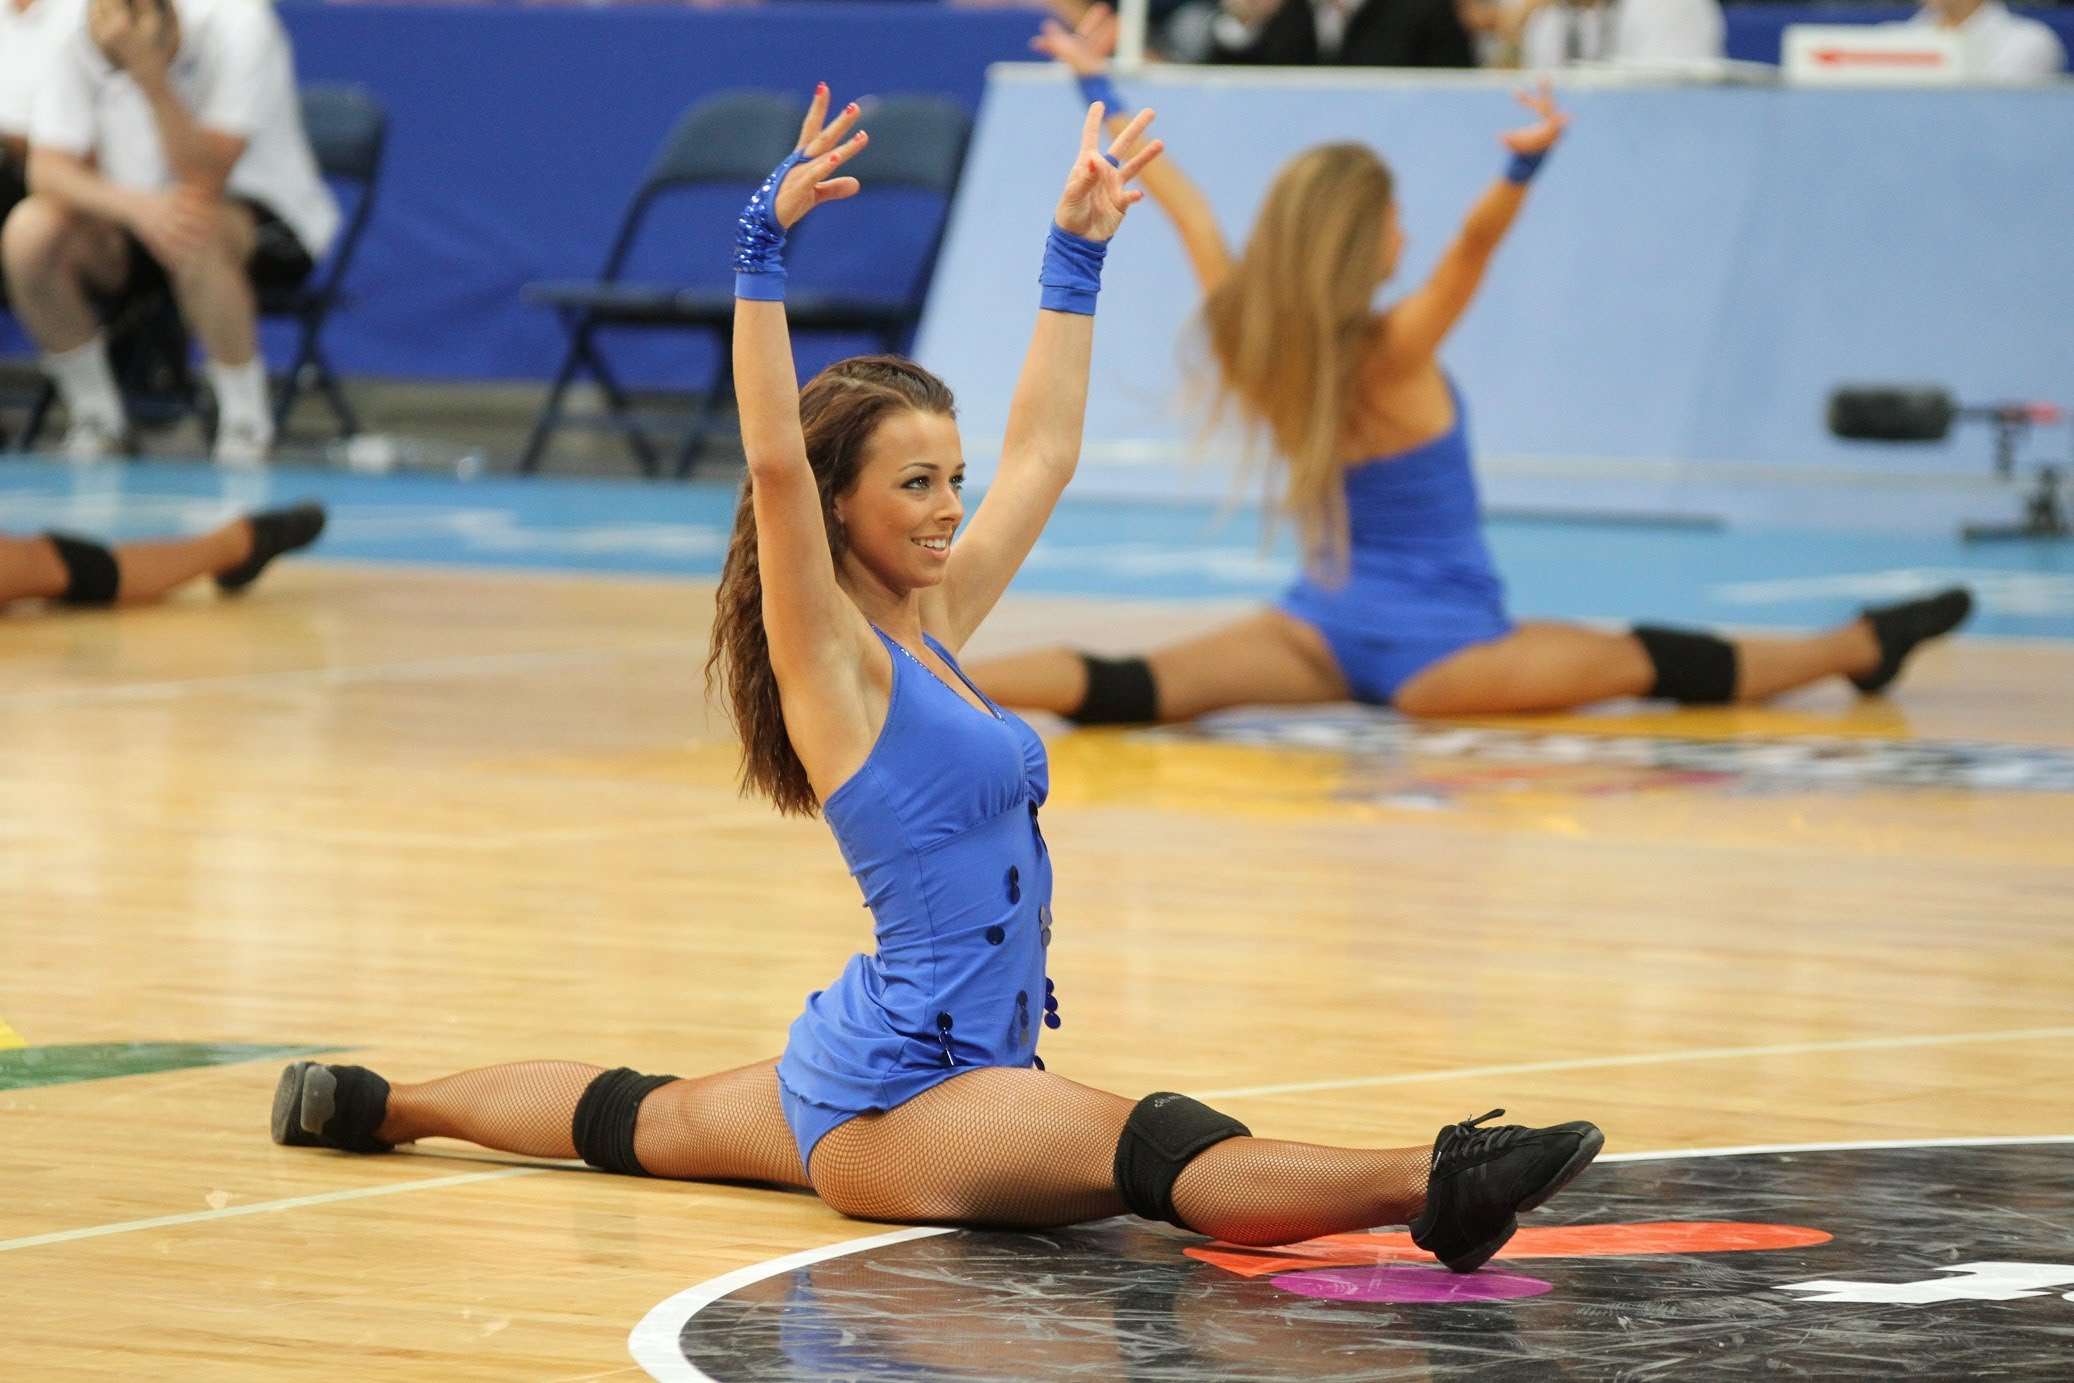 Have You Ever Seen Lithuanian Cheerleaders? You'd Want To